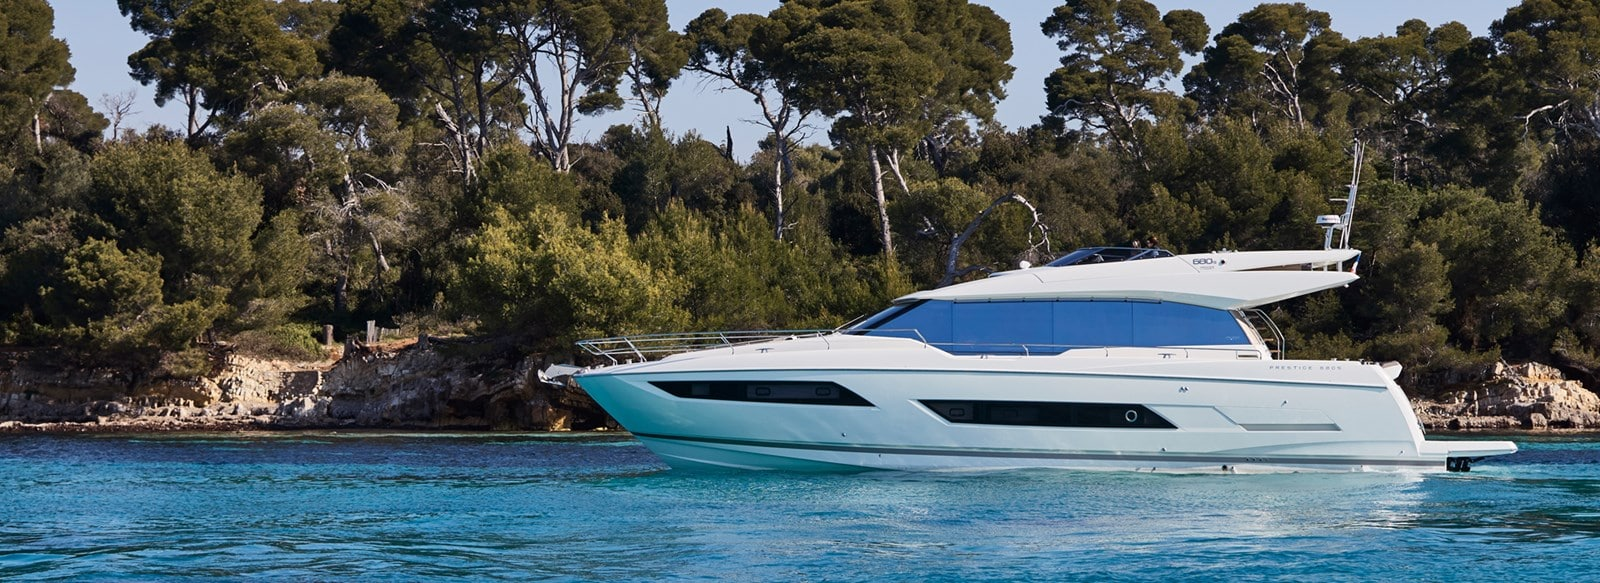 prestige 680s yacht for sale